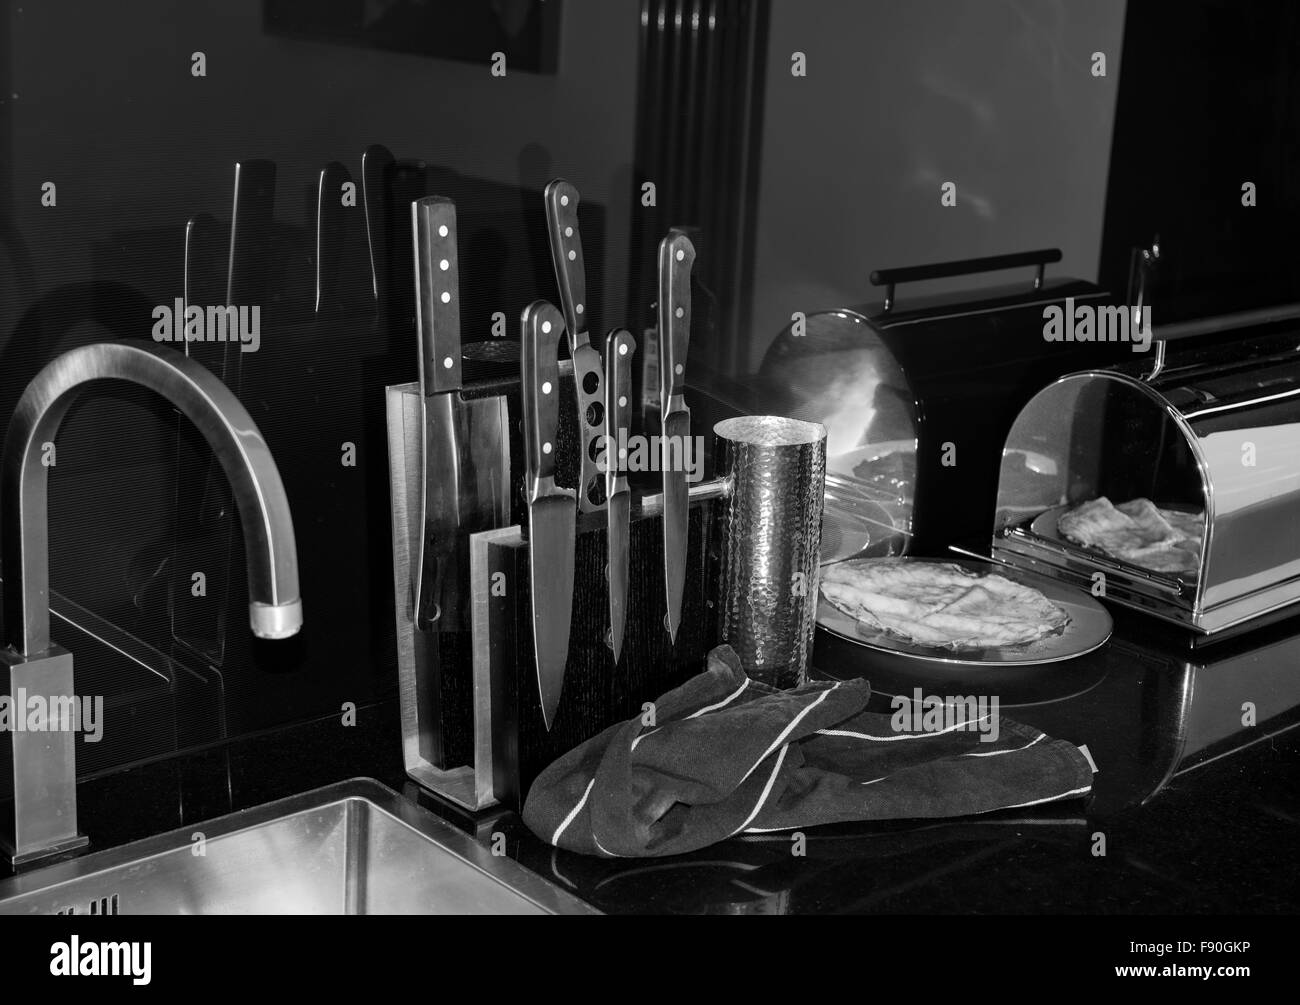 Modern Kitchen With Sink And Kitchen Knives Set In Black And White